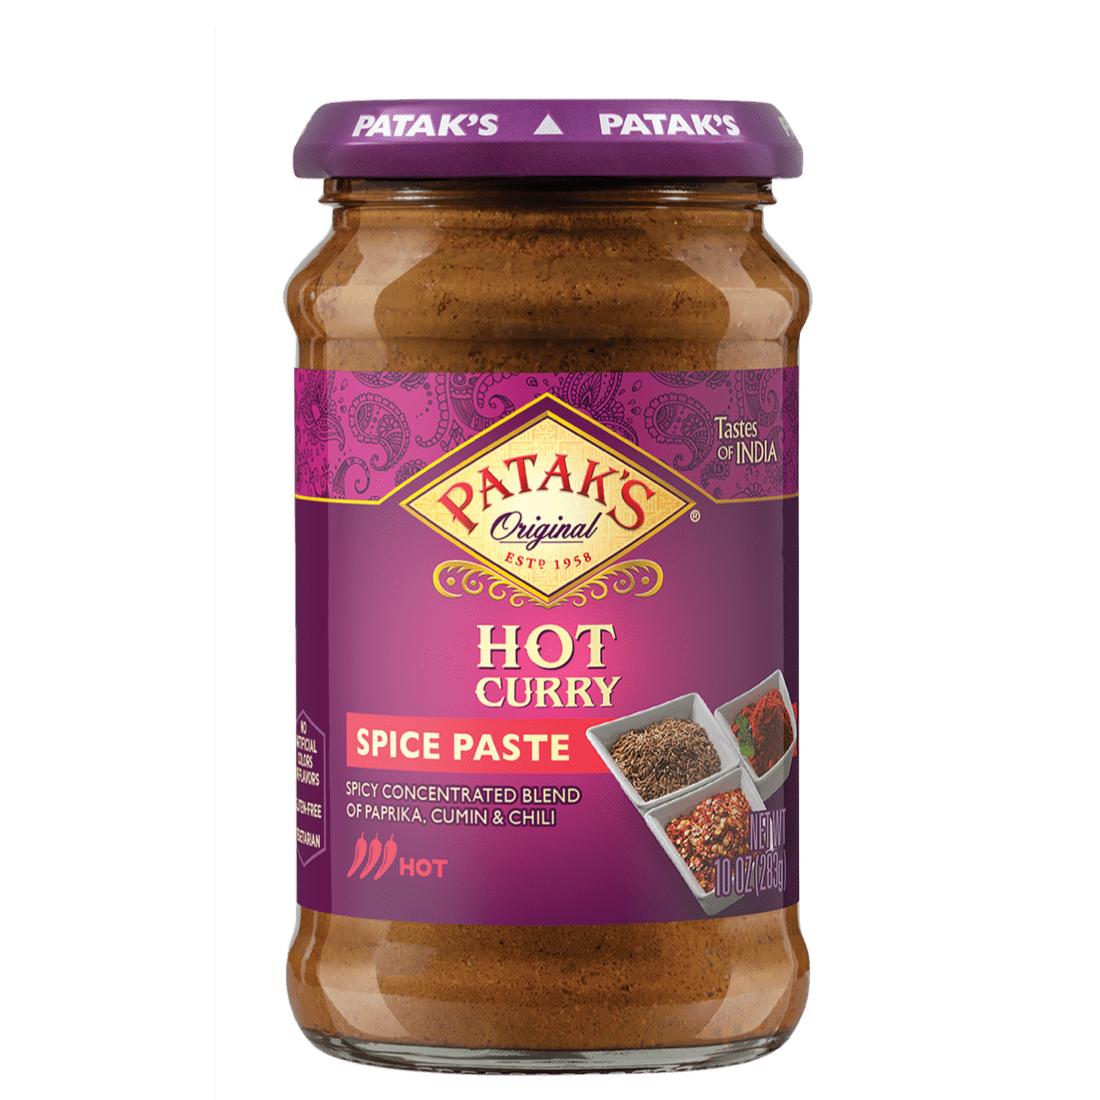 Hot curry spice paste 2x